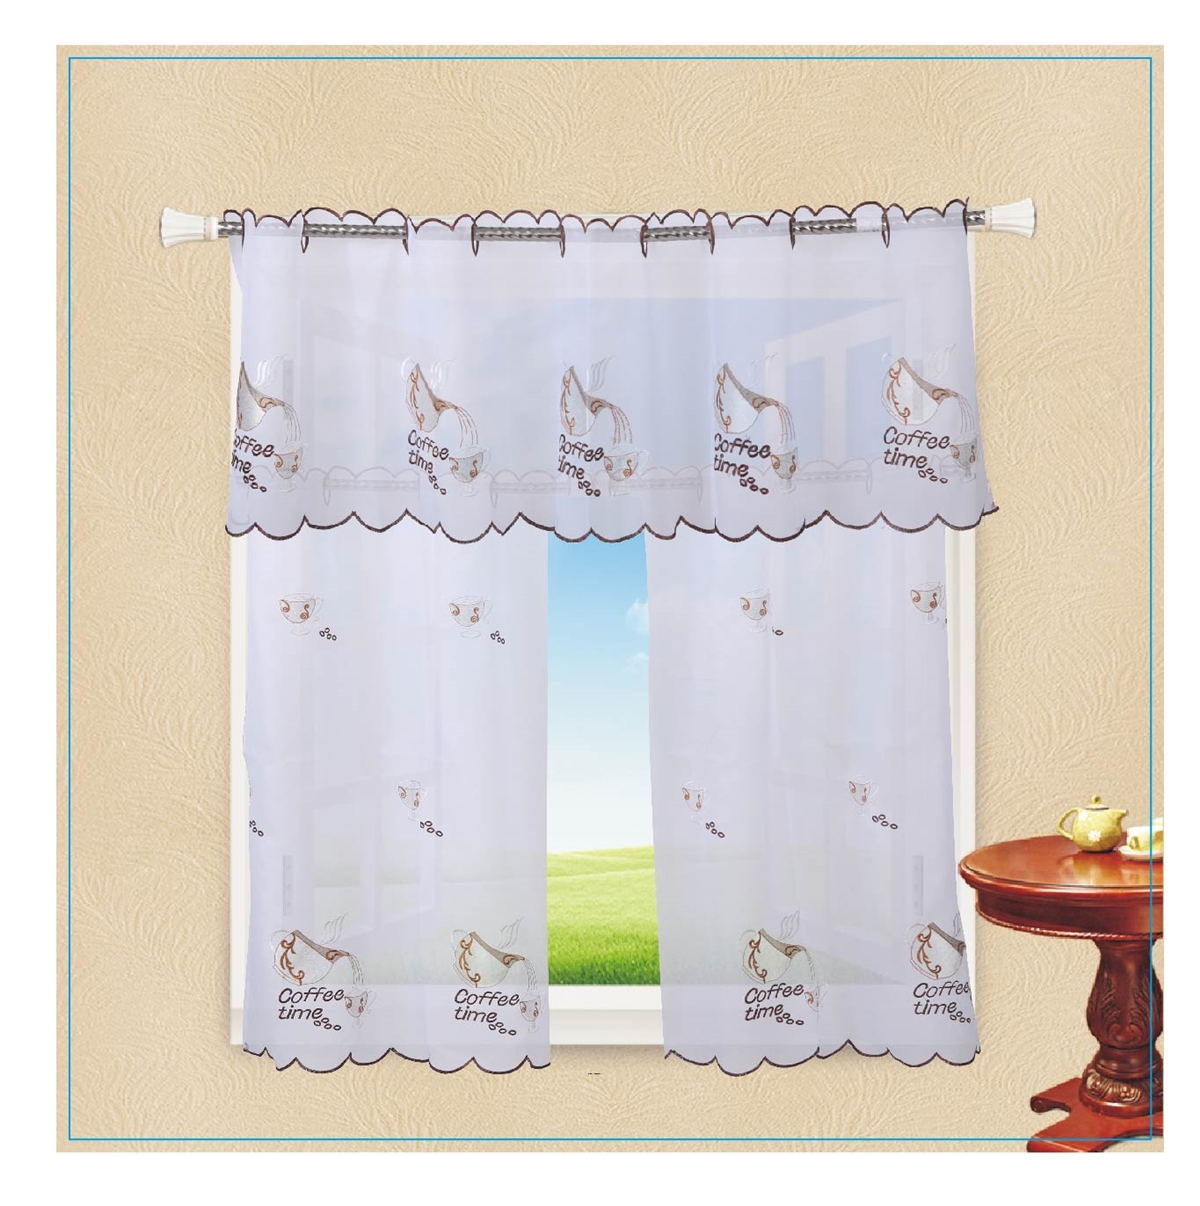 Violet Linen Ornate Sheer With Embroidered Flowers Design 3 Piece Kitchen Curtain Set – White Inside Solid Microfiber 3 Piece Kitchen Curtain Valance And Tiers Sets (View 15 of 20)